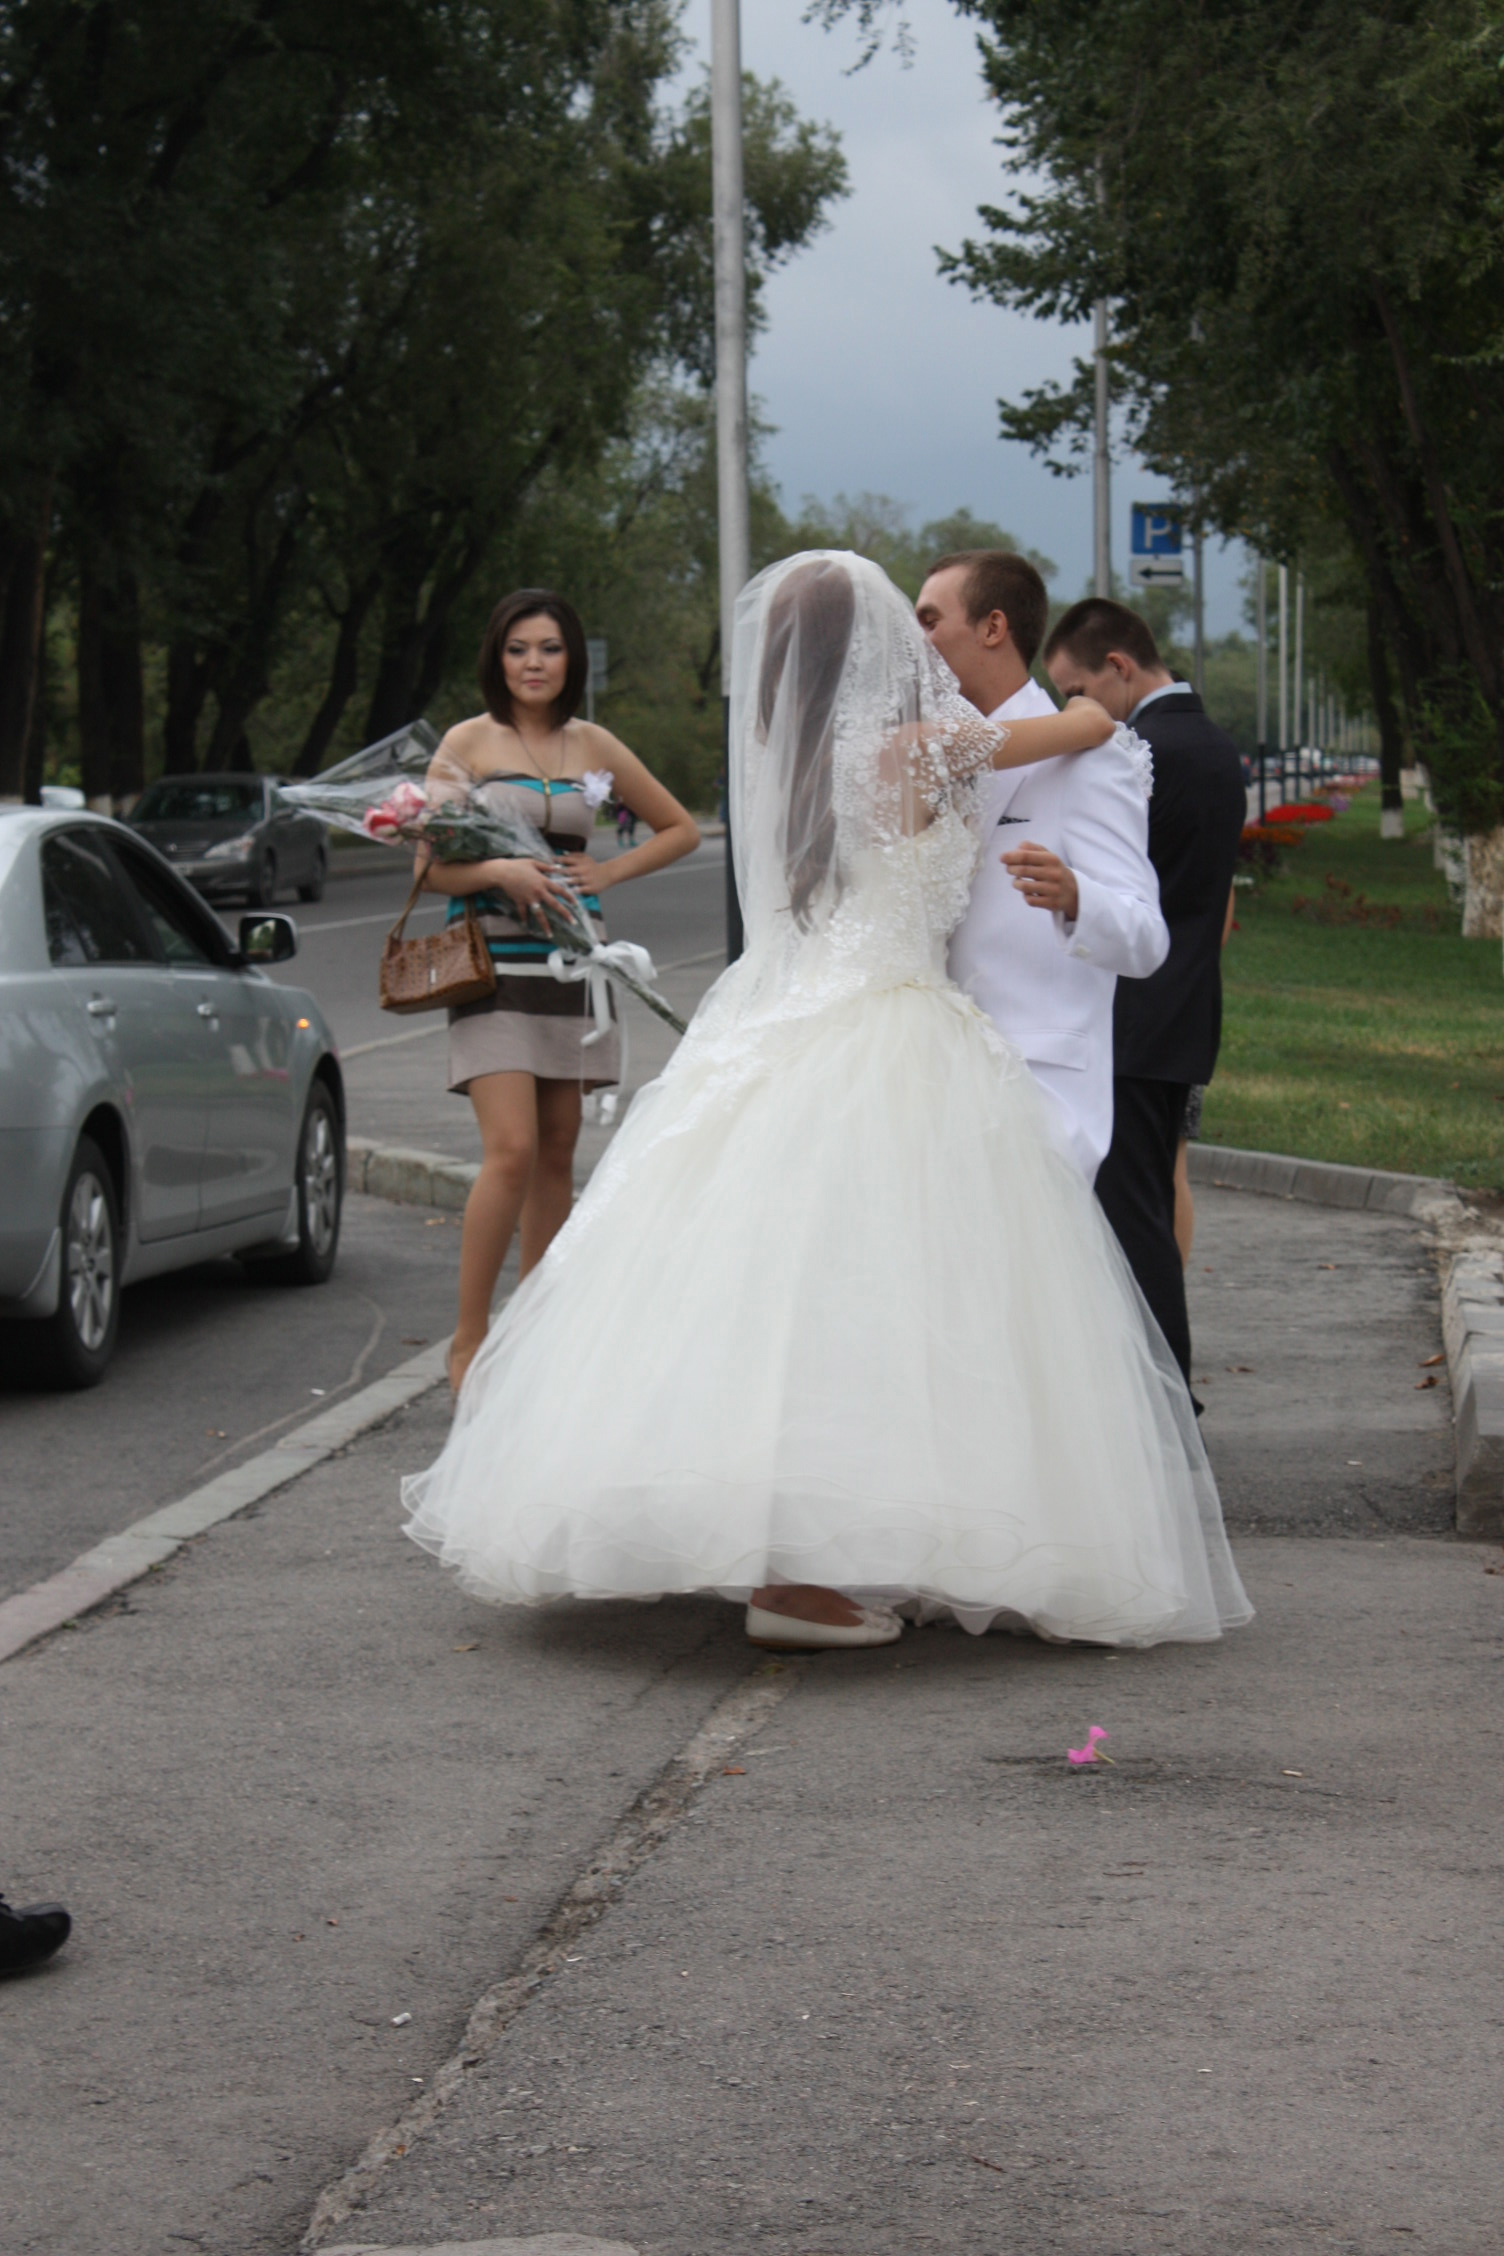 Weddings—a big business in Central Asia | Where to next?